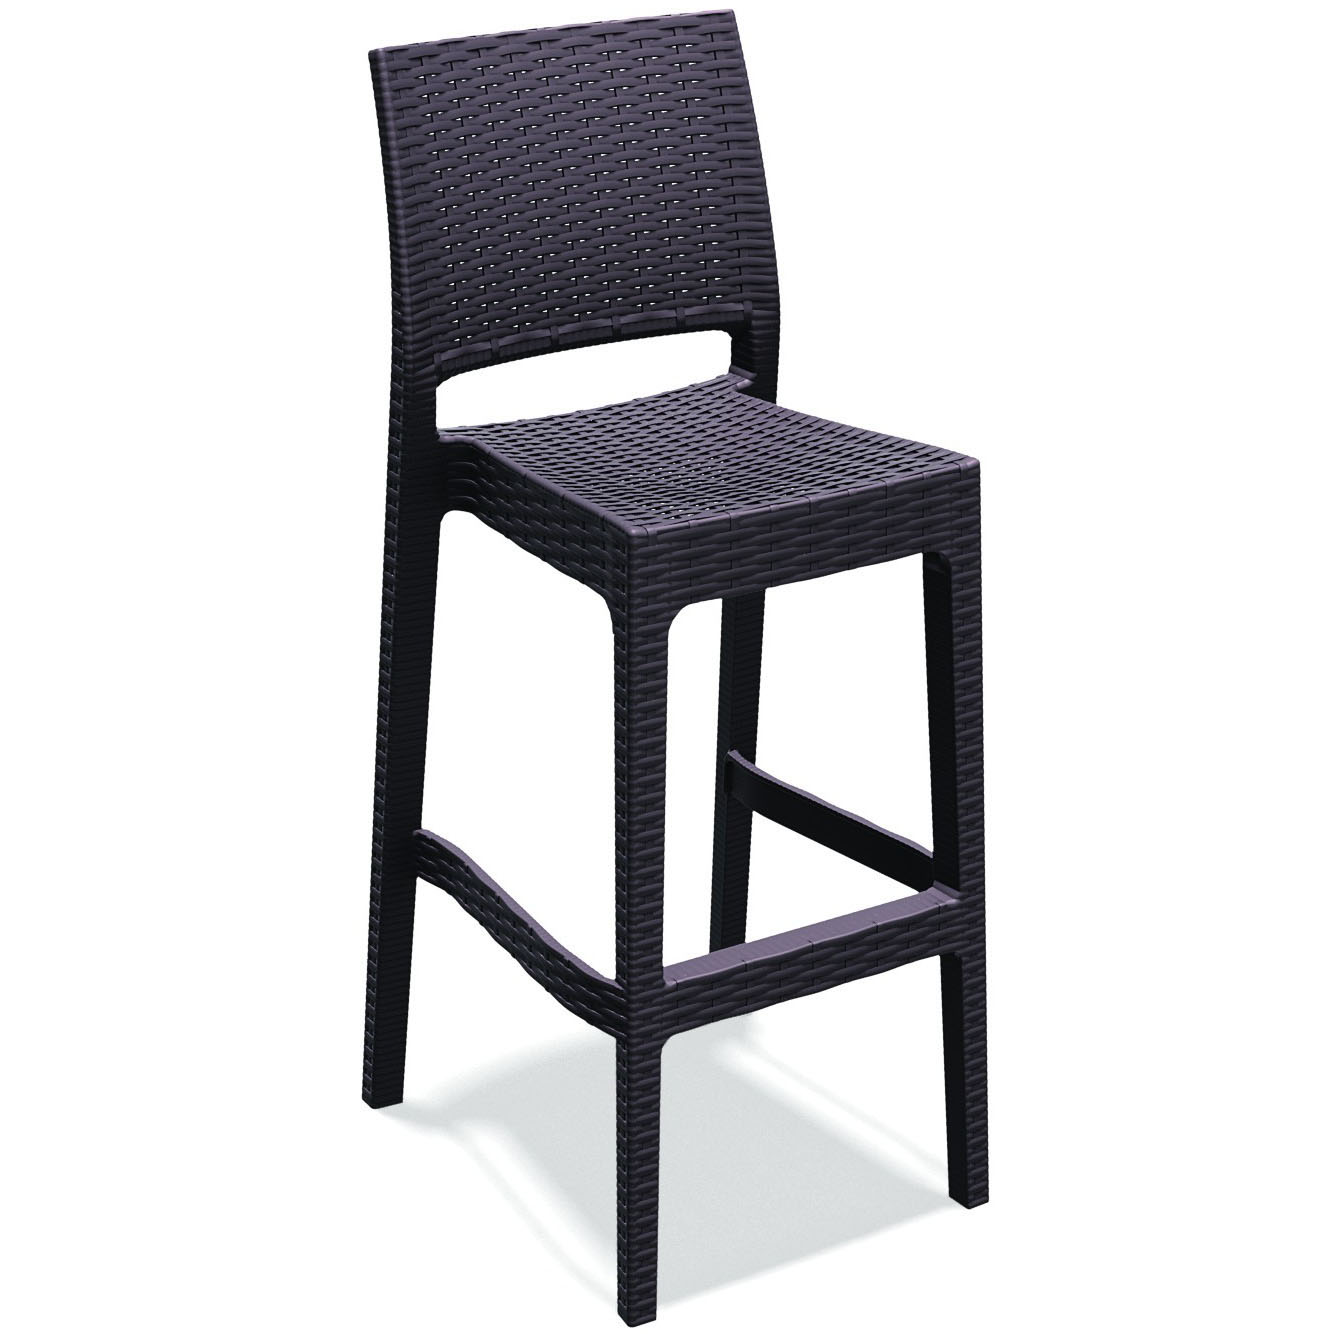 Buy Wickerlook-Stackable-Barstool Product Image 512